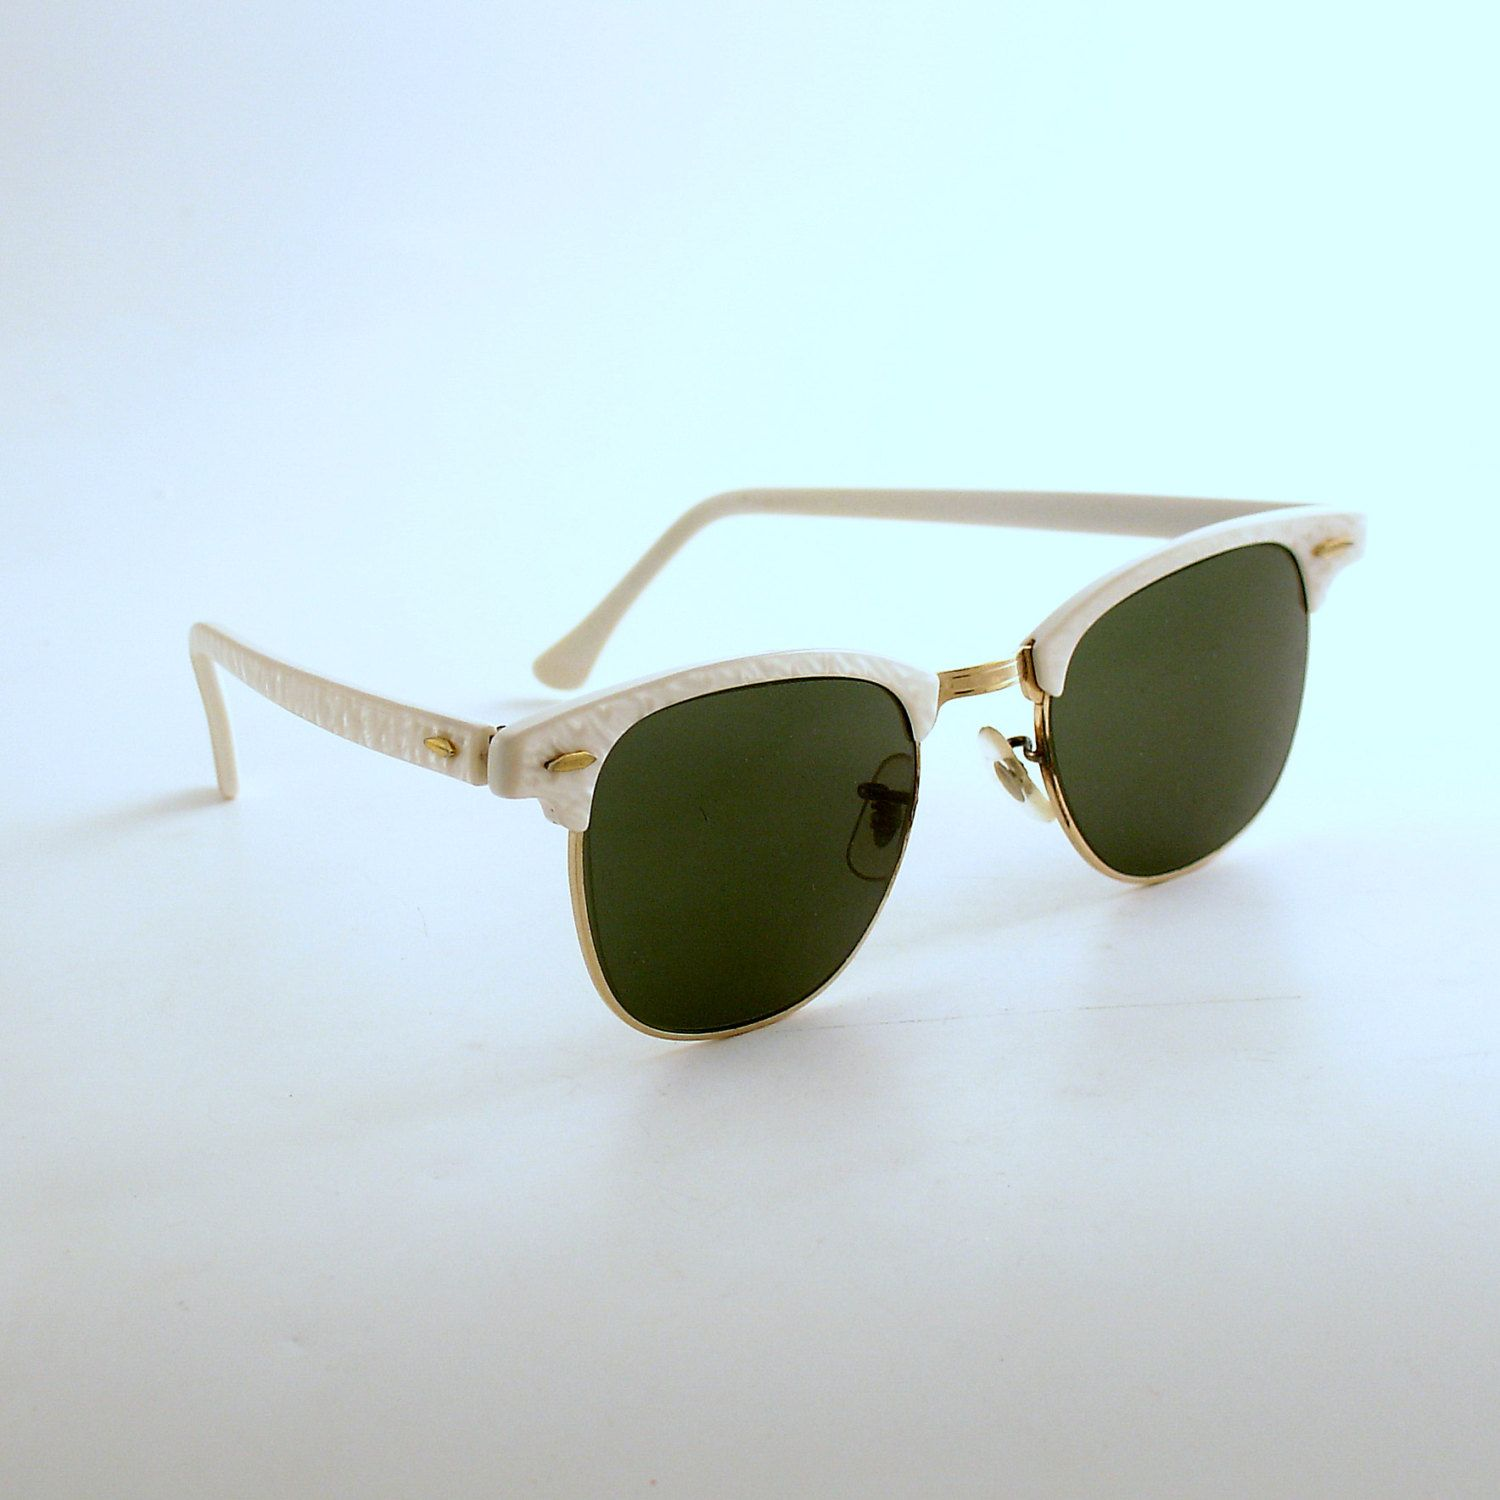 6b71566681f8 Vintage Ray Ban Clubmaster Sunglasses Bausch Lomb Made in USA by efinegifts on  Etsy